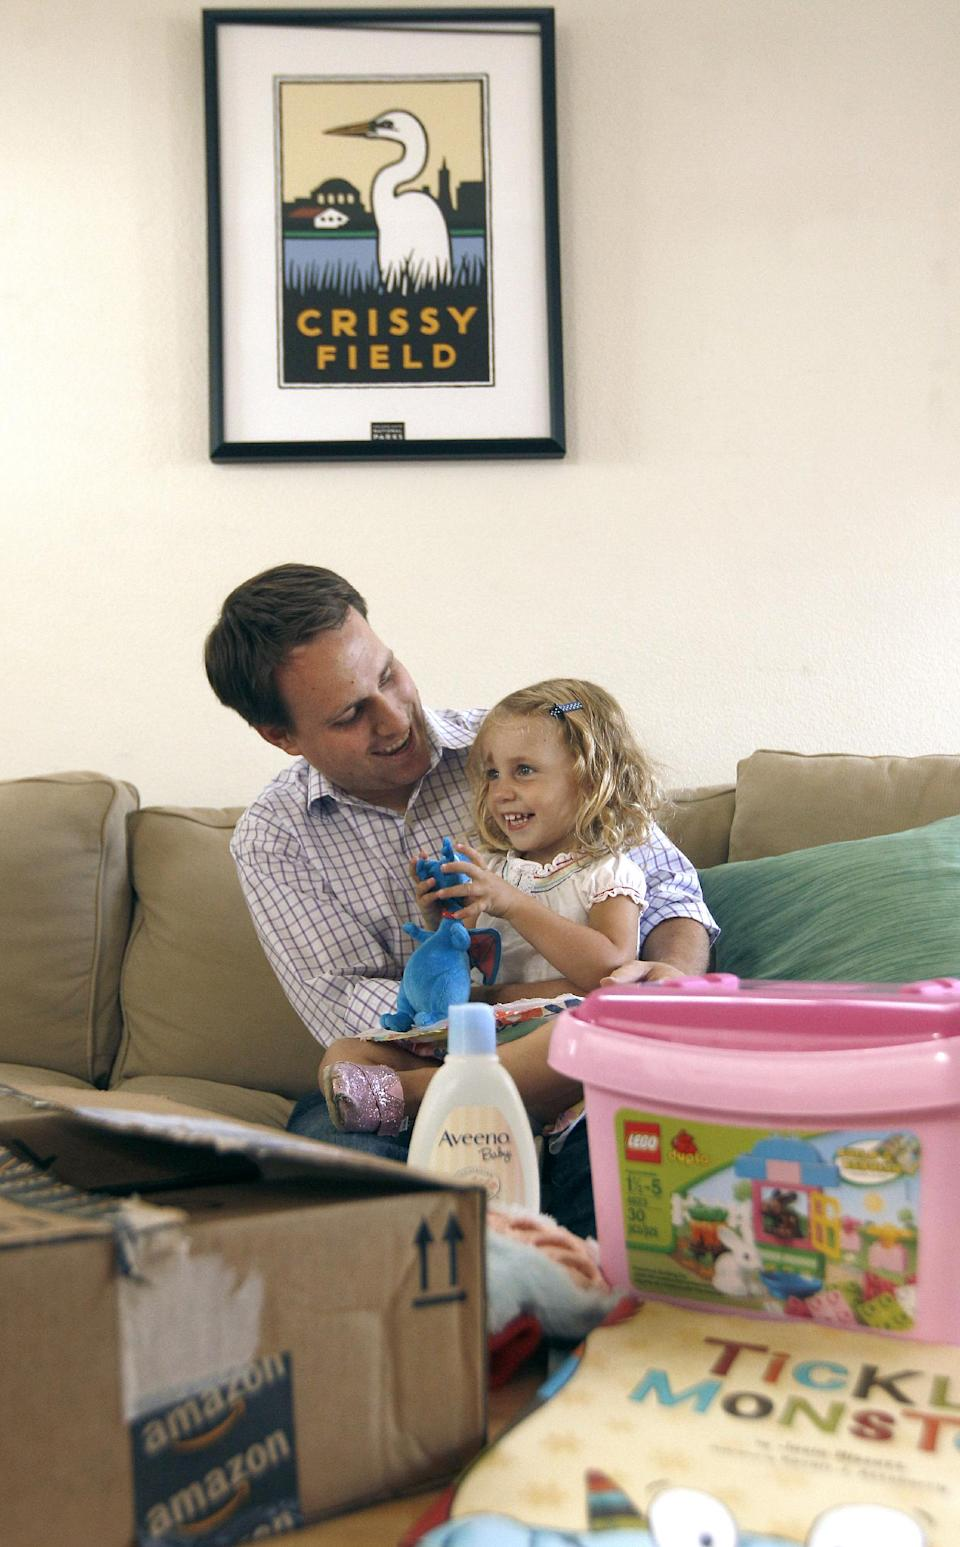 Reid Butler plays his daughter Siena, 2, as they pose for photographs with recent online purchases from Amazon at their home in Walnut Creek, Calif., Thursday, Sept. 13, 2012. Products are flying off the shelves at Amazon warehouses across the county as Californians prepare to start paying sales taxes on online purchases. (AP Photo/Jeff Chiu)